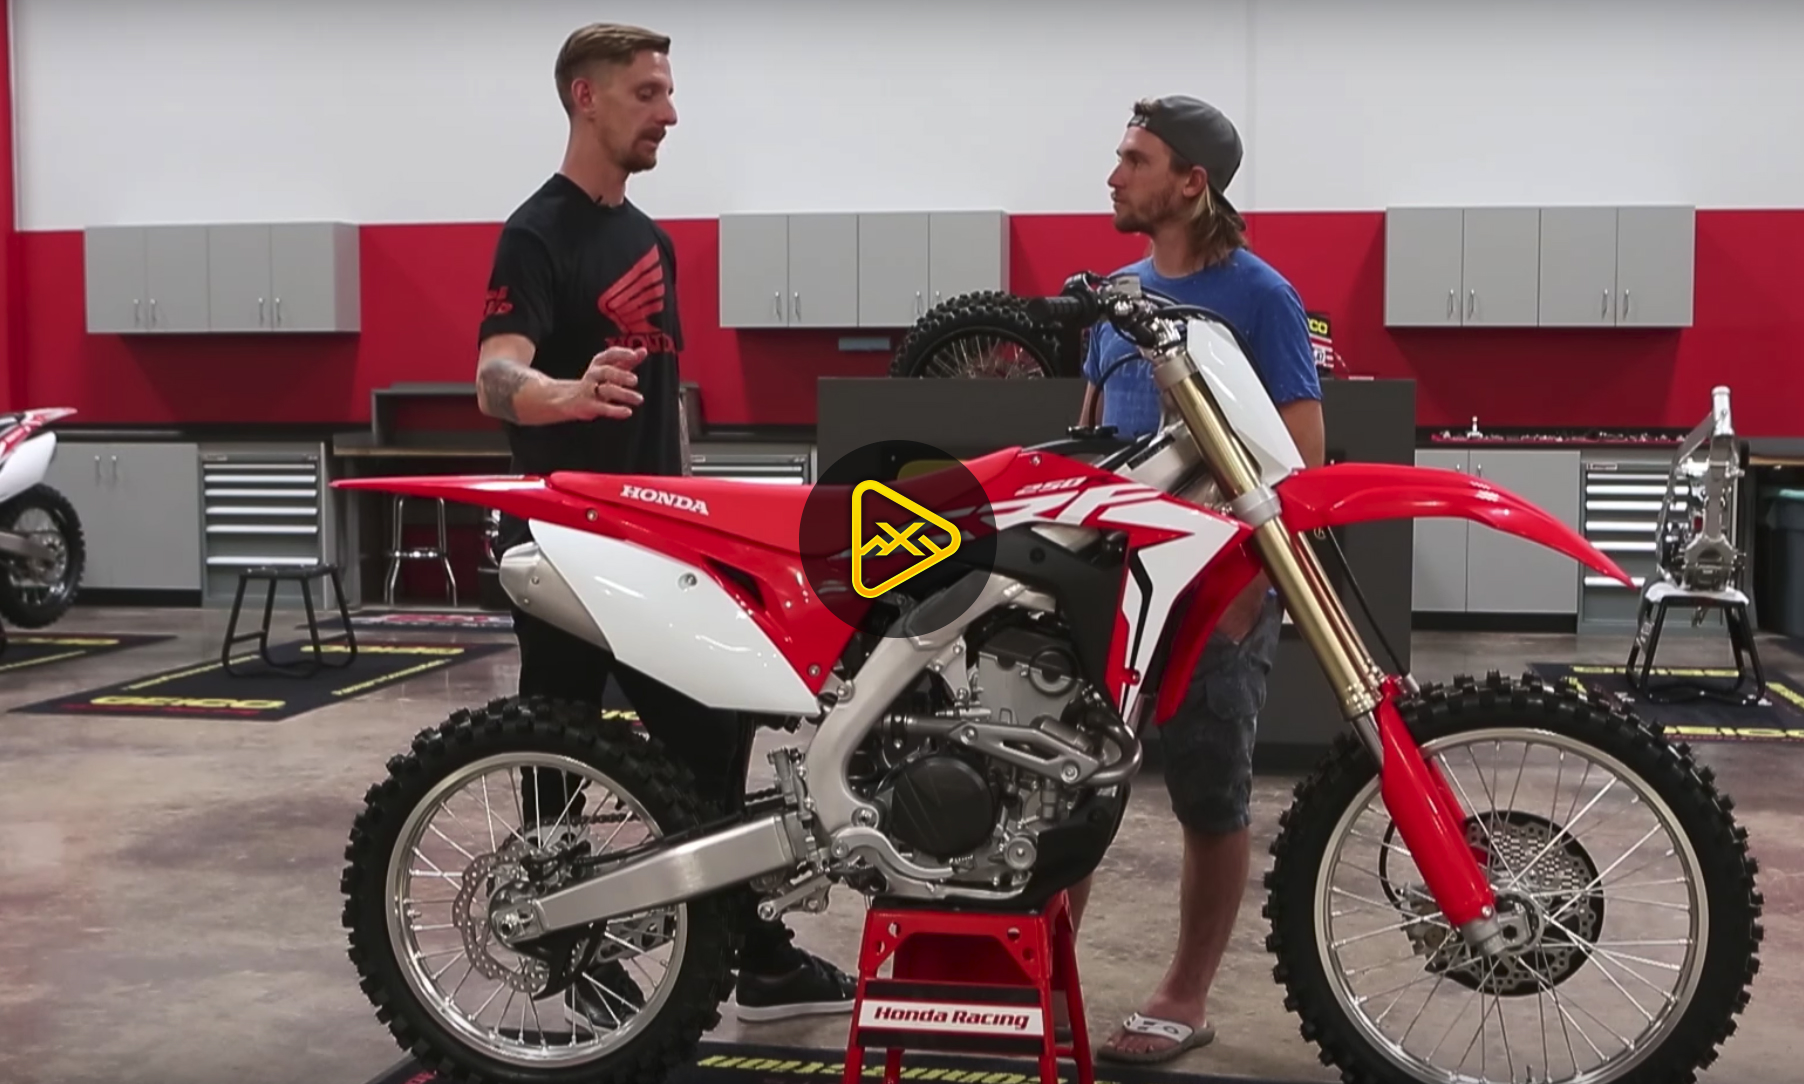 Walk-Around: Tech Brief on the 2018 Honda CRF250R